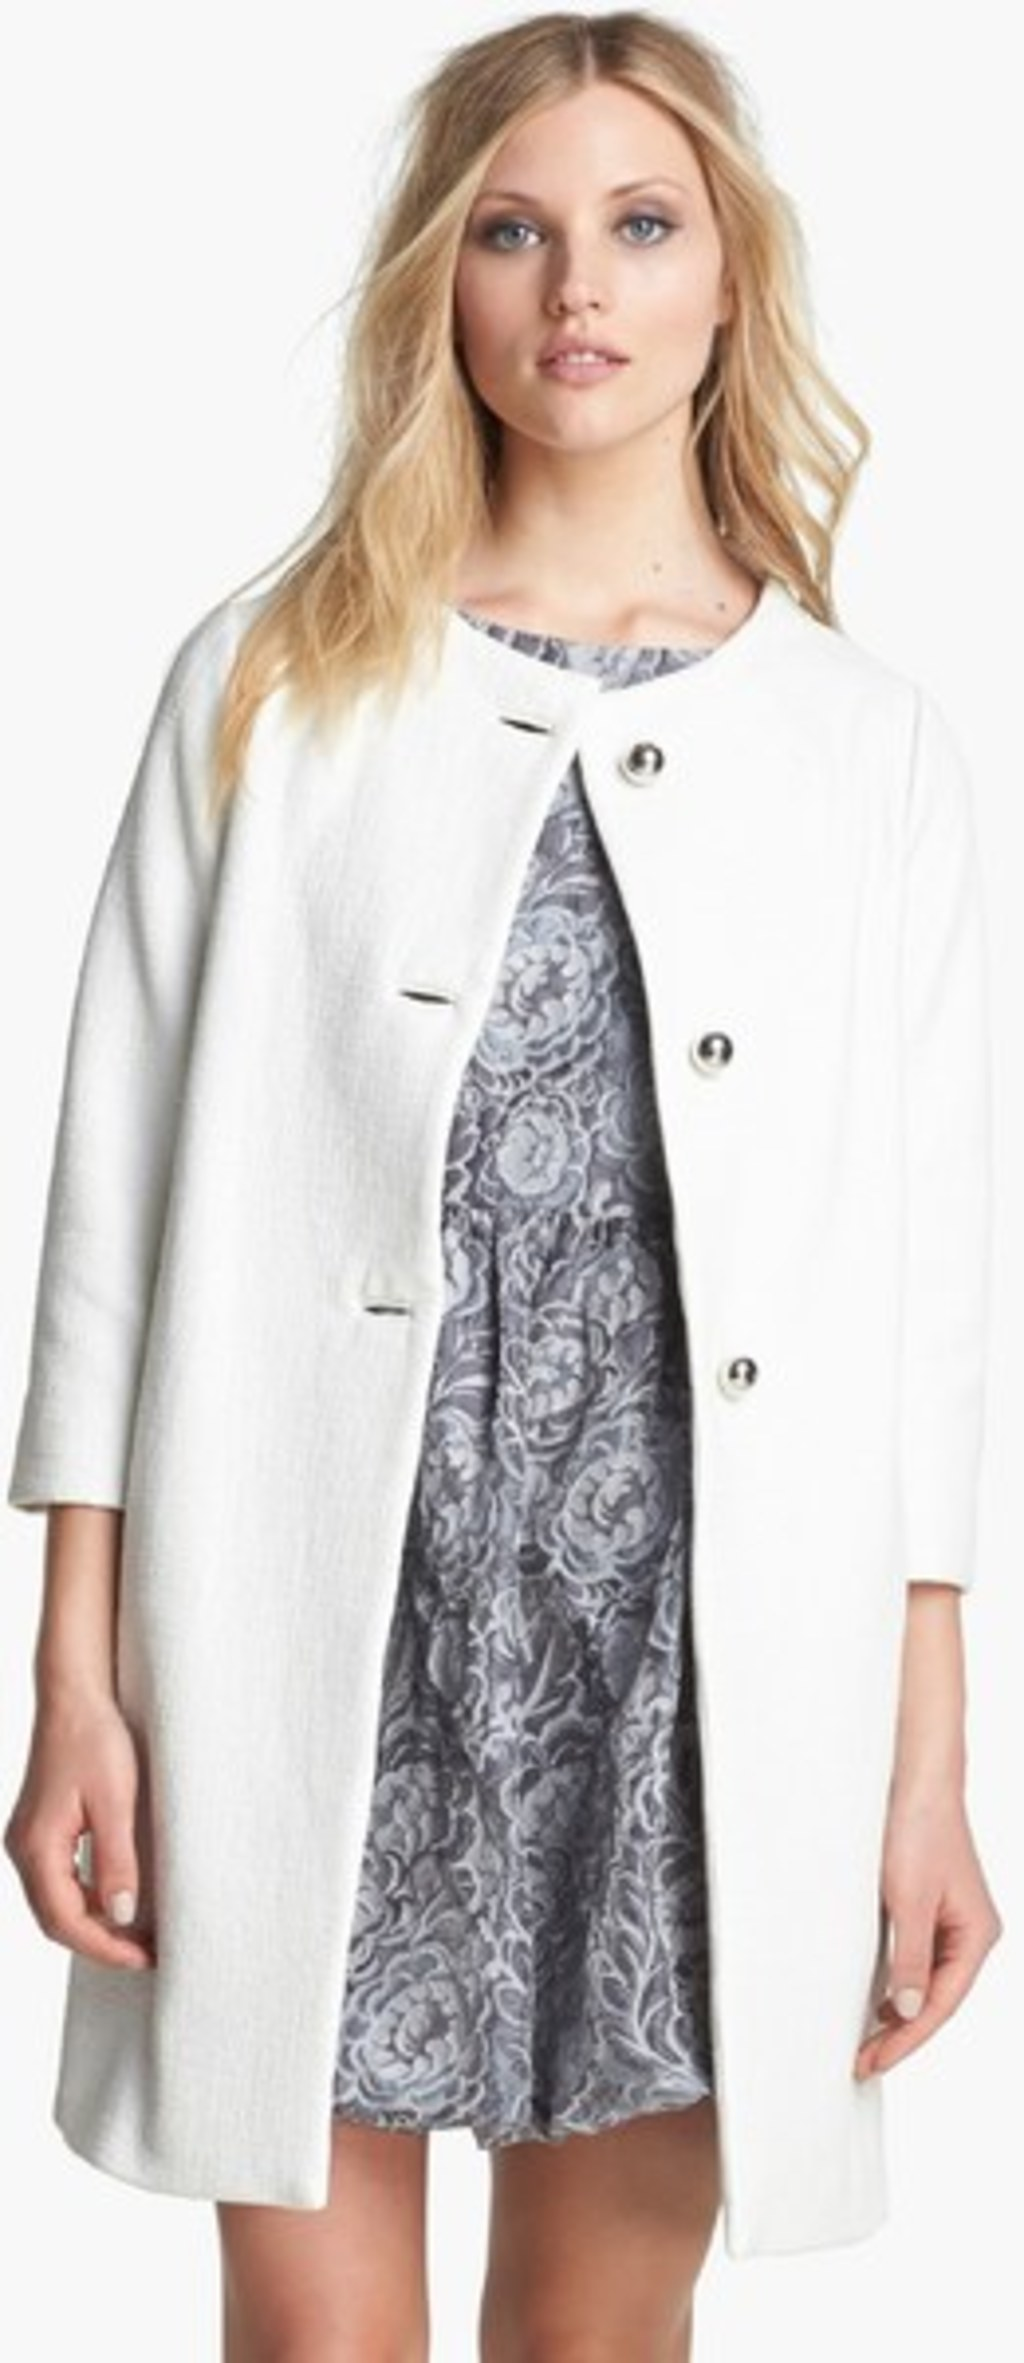 WHITE OUTERWEAR - KATE SPADE NEW YORK PHOTO COURTESY OF NORDSTROM